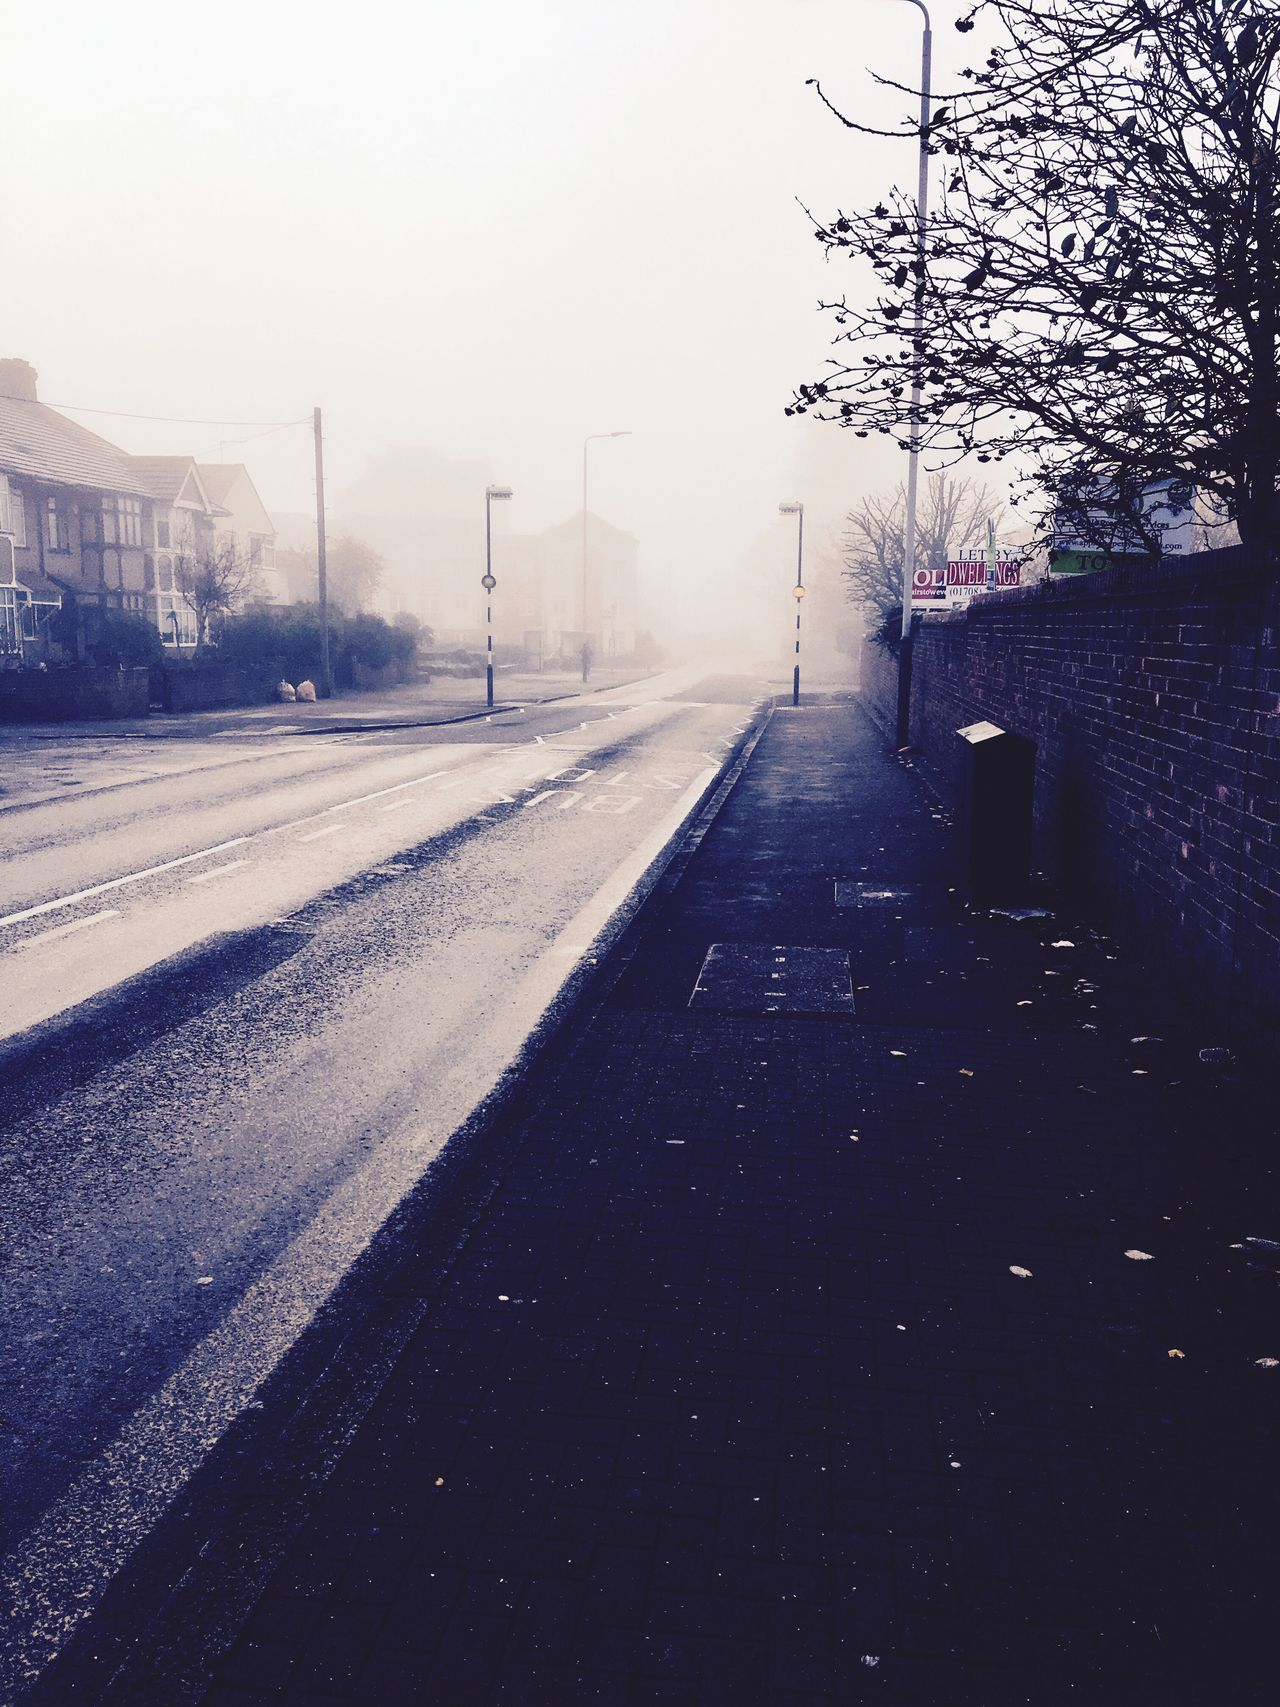 The streets of London will always be foggy Early Morning Busstop Foggy Morning Darkness Invisible No People Only You